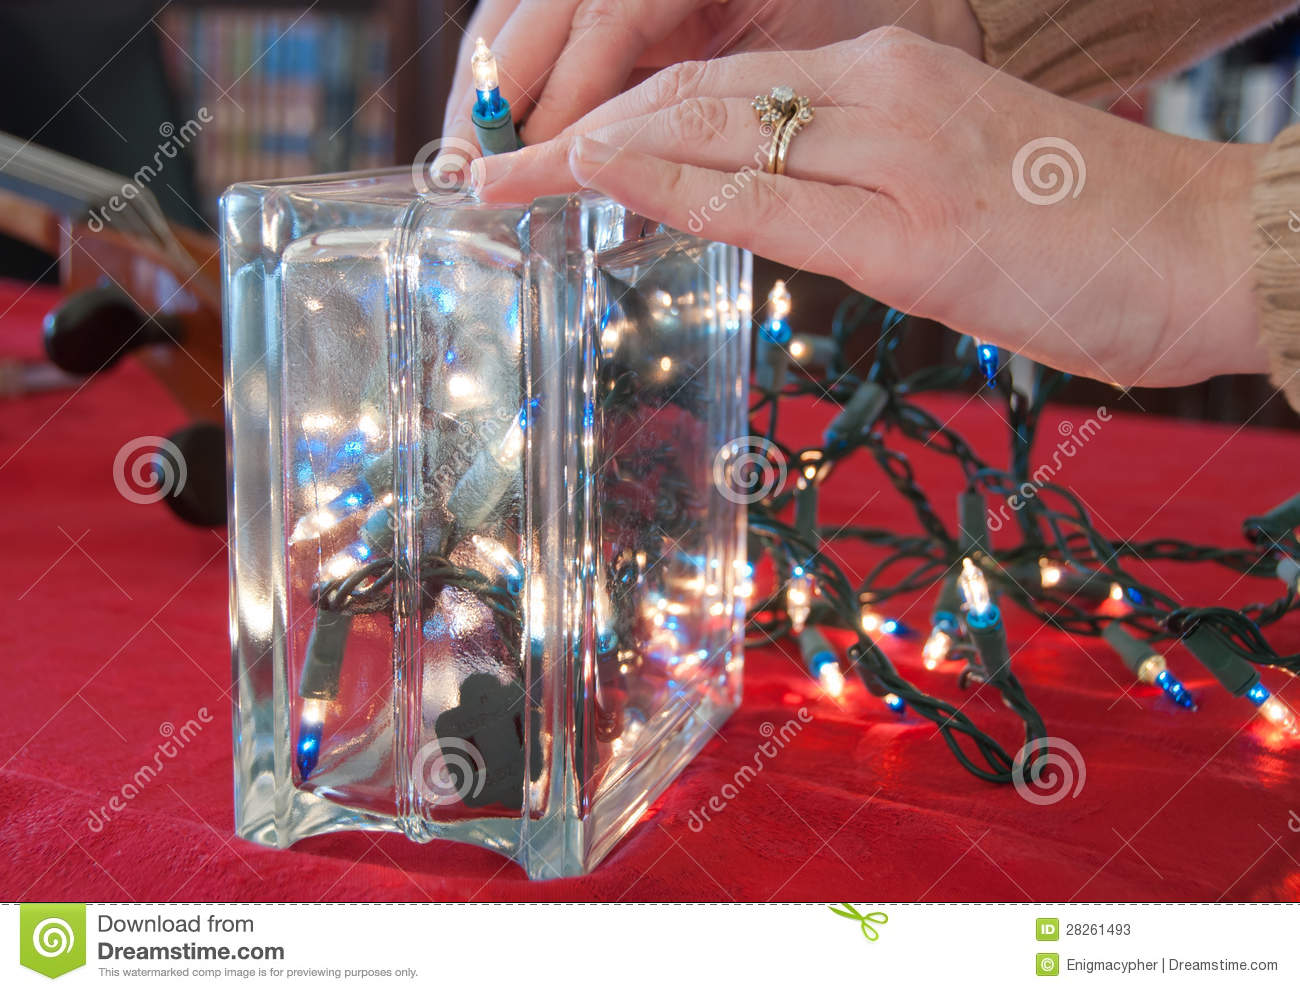 Christmas lights in a glass block stock photos image for Hollow glass blocks for crafts